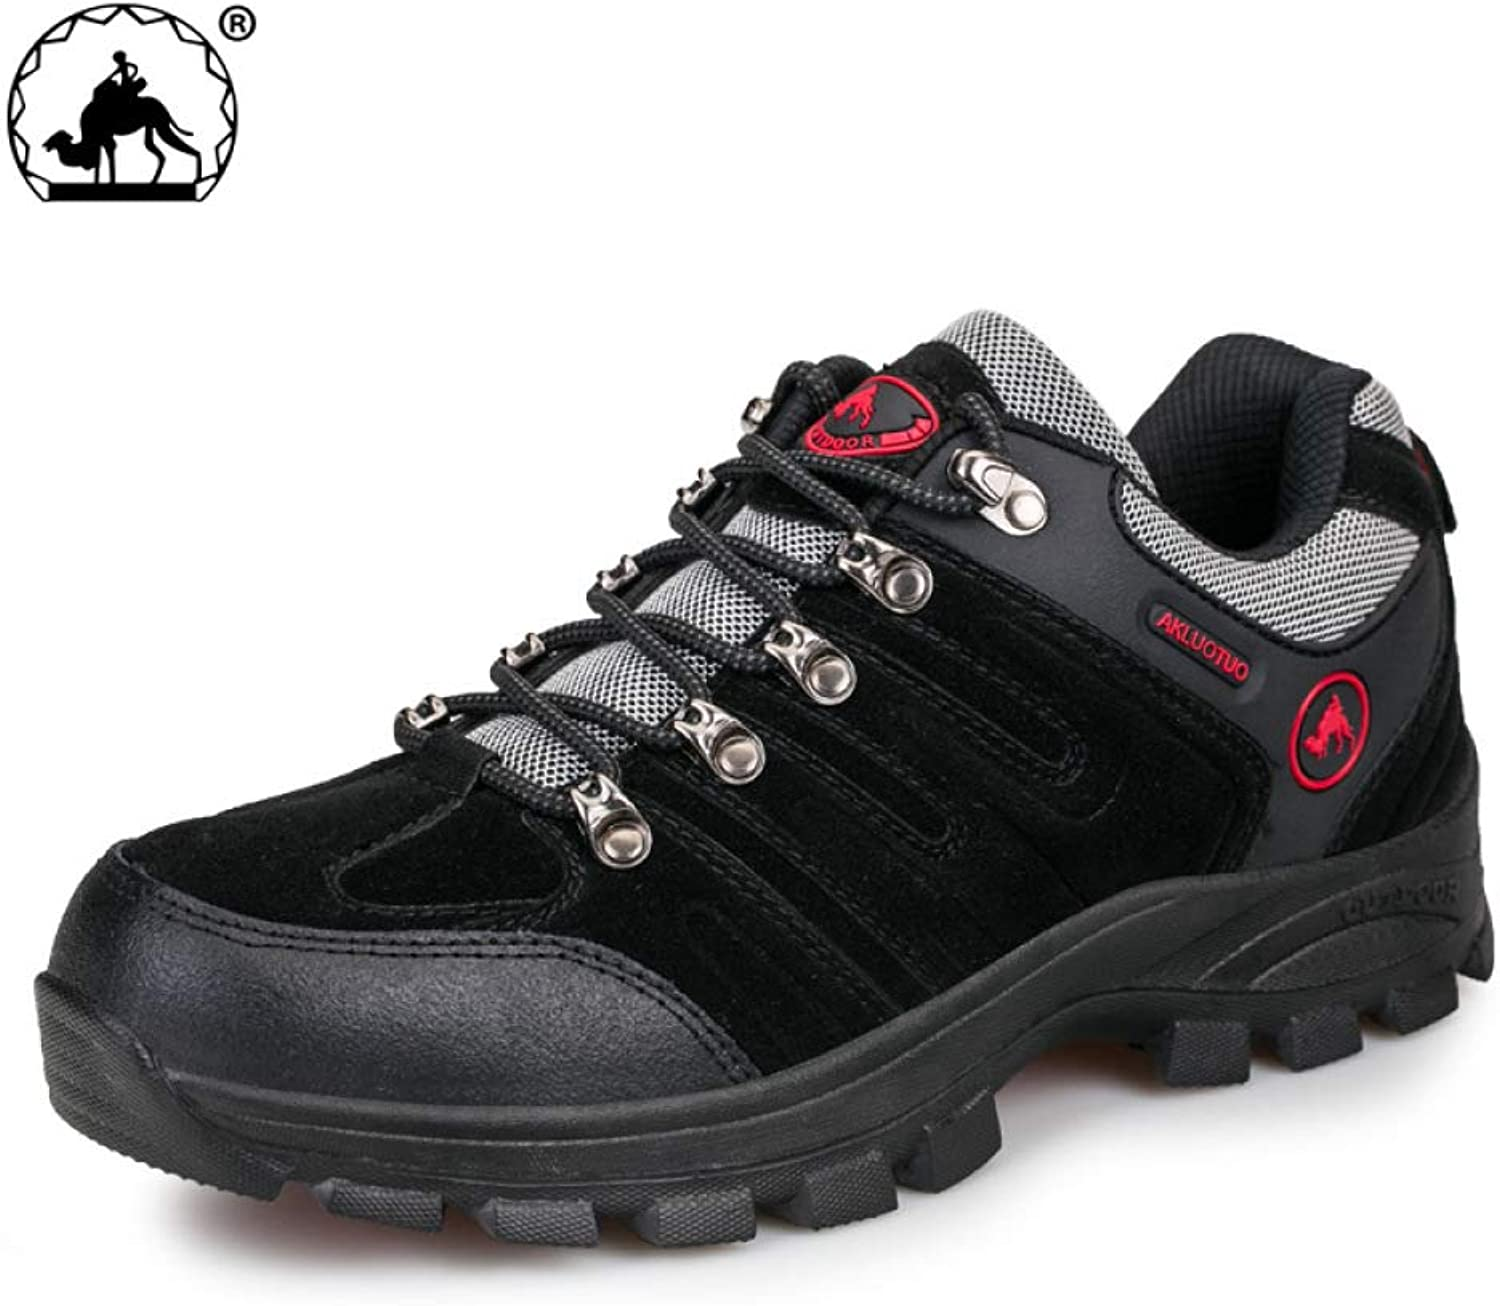 Casual Spring And Autumn Hiking Low-Top Sneakers, Outdoor shoes, Men'S Comfortable Wear-Resistant Hiking shoes, Men'S shoes